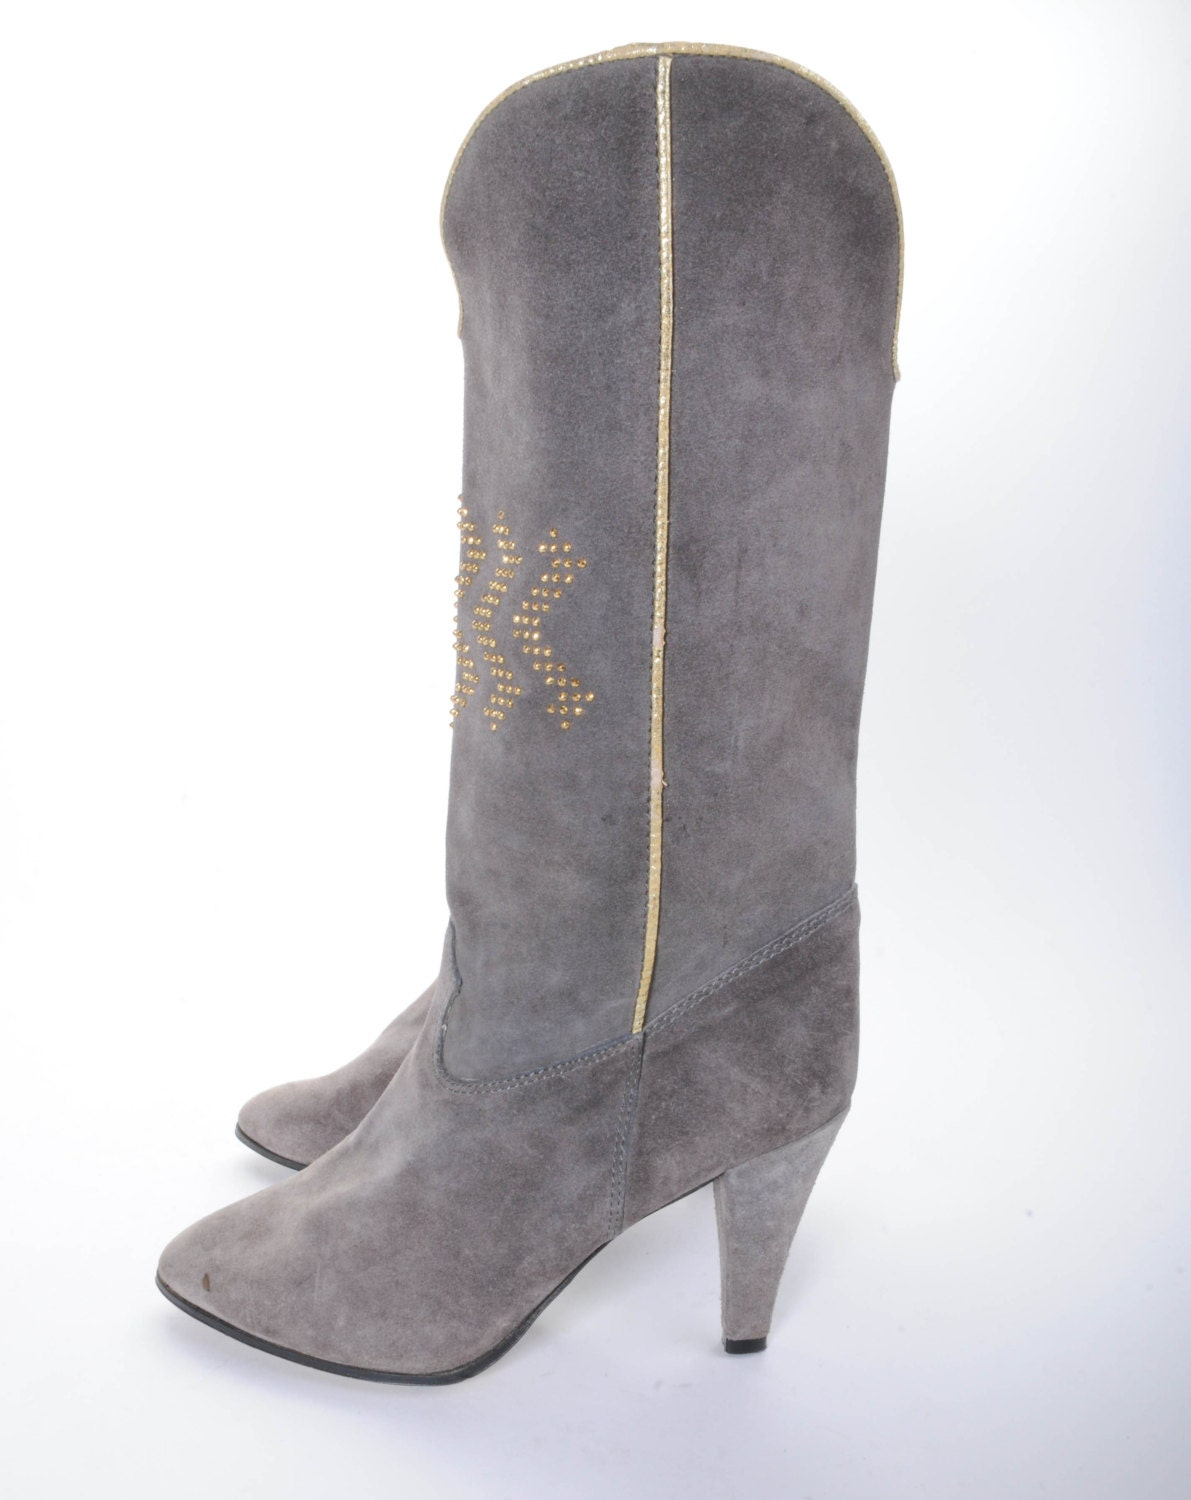 Cool Womens Office Flawless Ankle Boot GREY SUEDE Boots | EBay